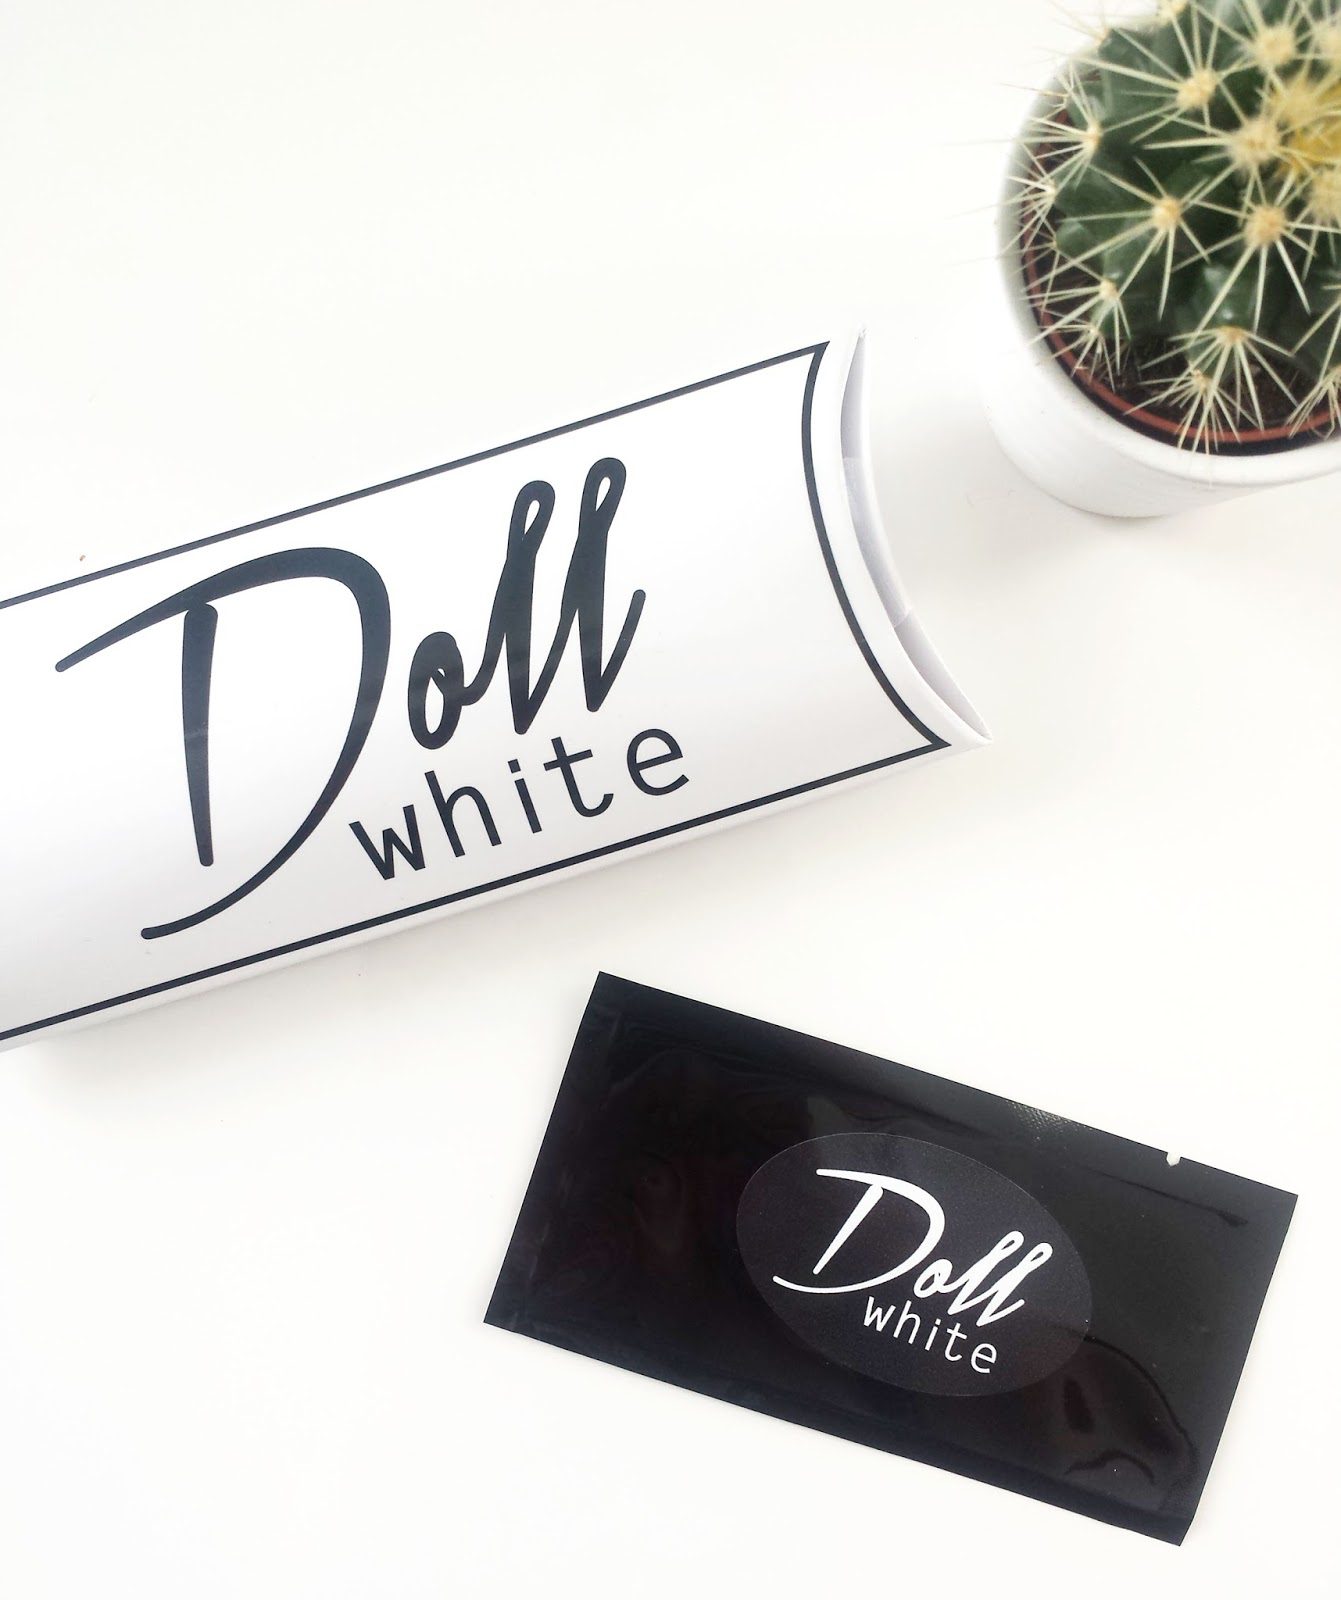 Doll White Teeth Whitening Strips